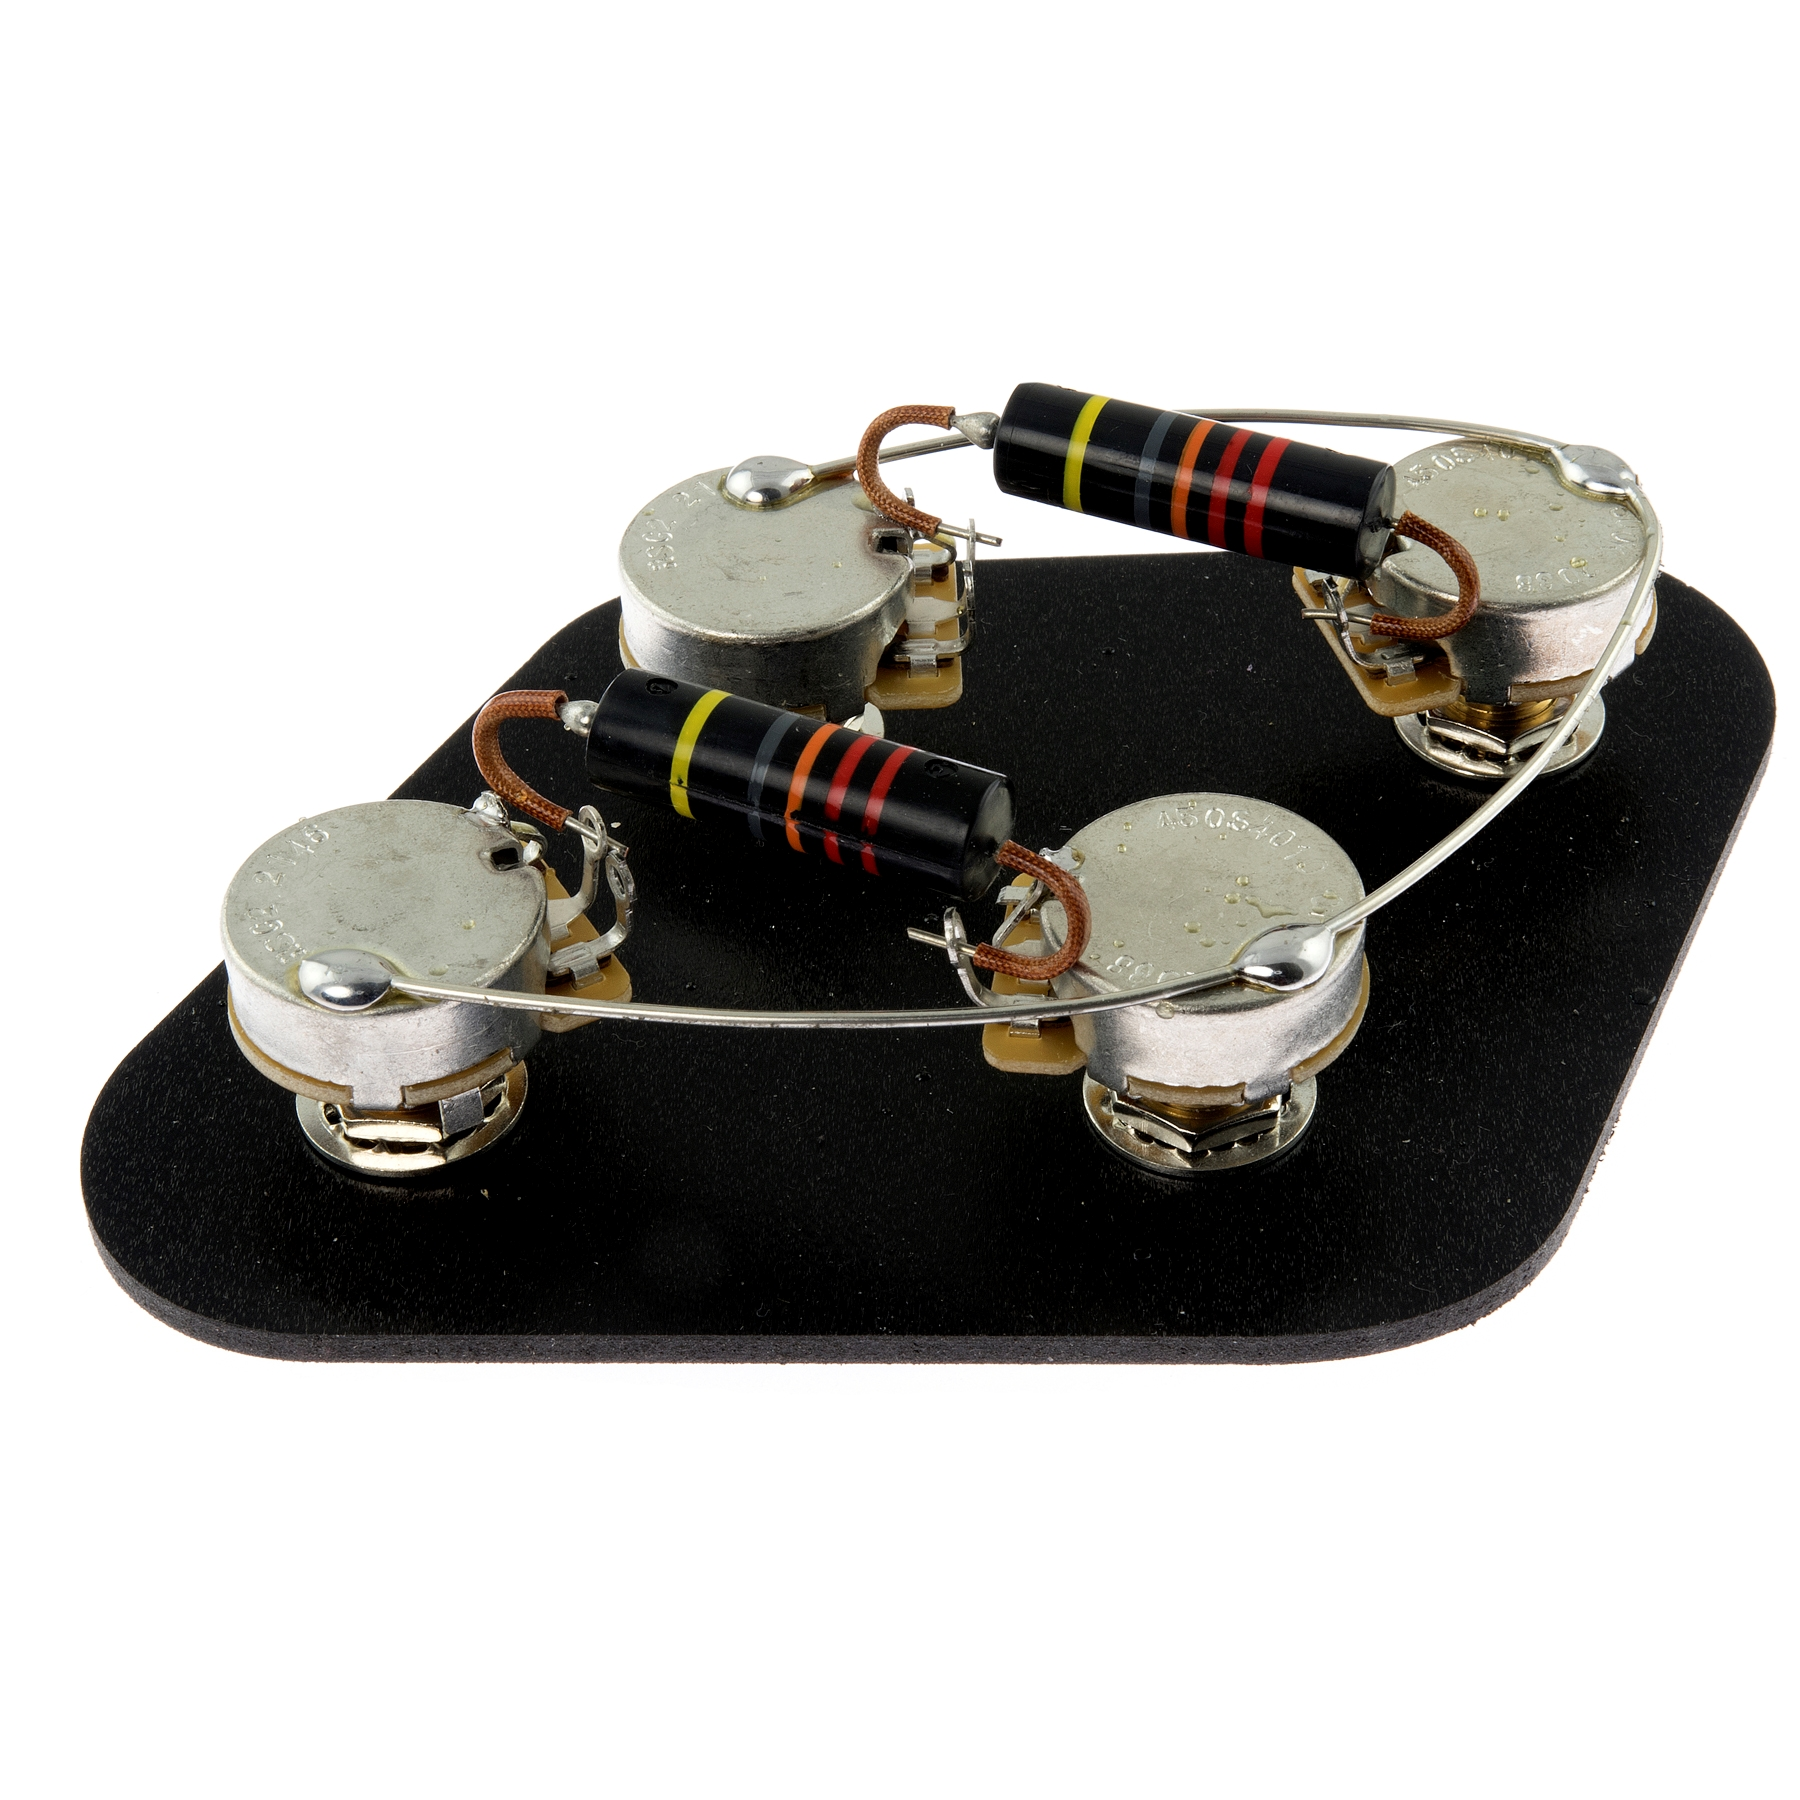 Pre Wired Guitar Electronics Wire Center Circuit Board Animation 11 By Motionworks Videohive Vintage Upgrade Kit With Luxe Bumble Bees Rh Charlesguitars Co Uk